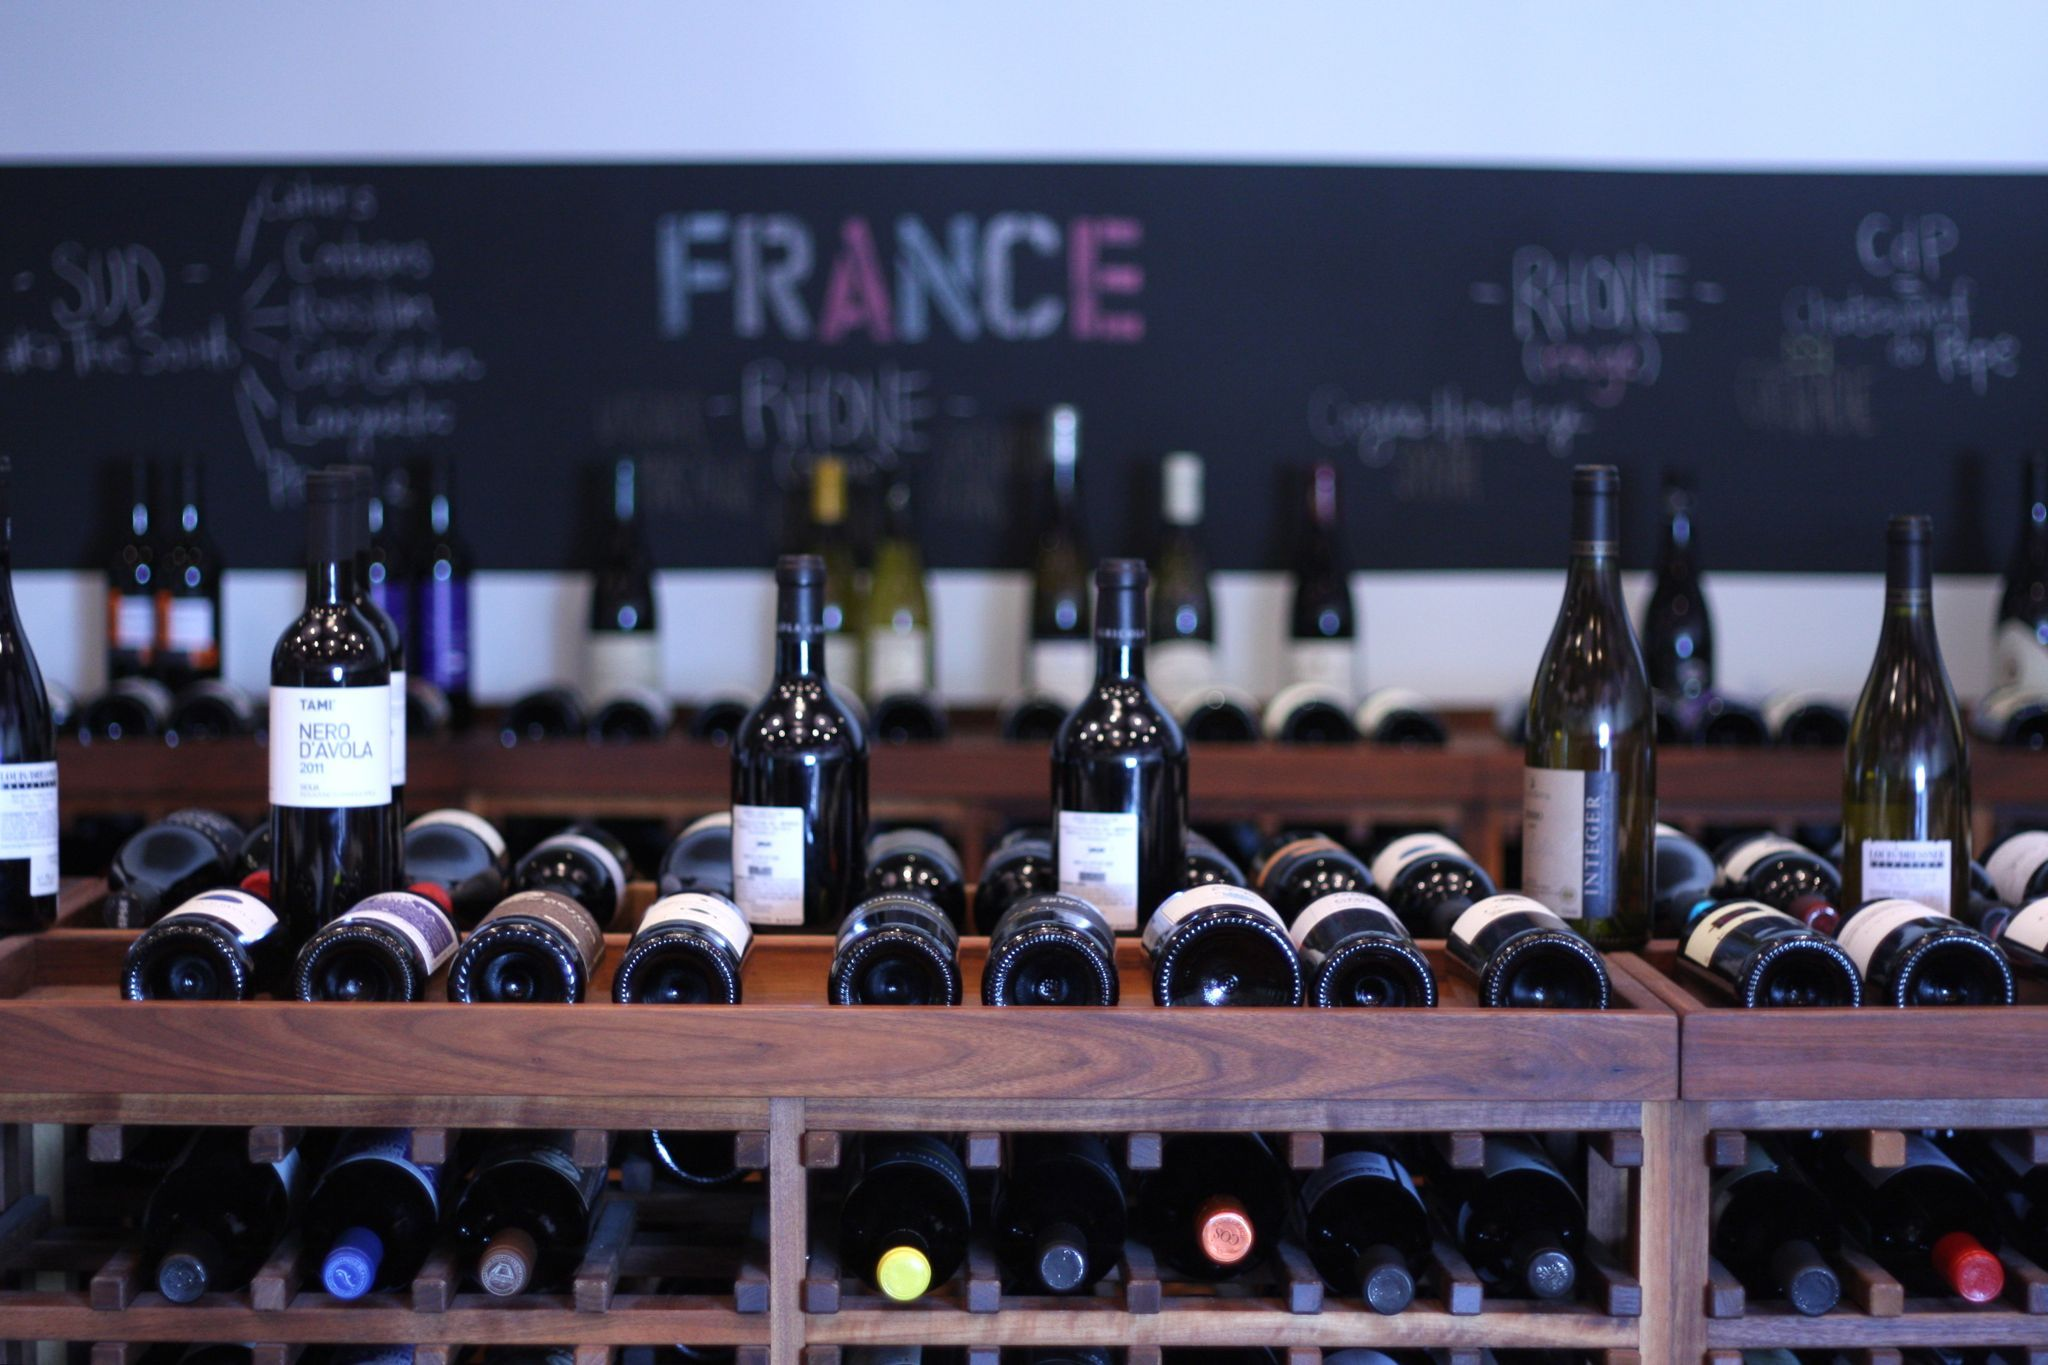 The best wine stores in L.A.